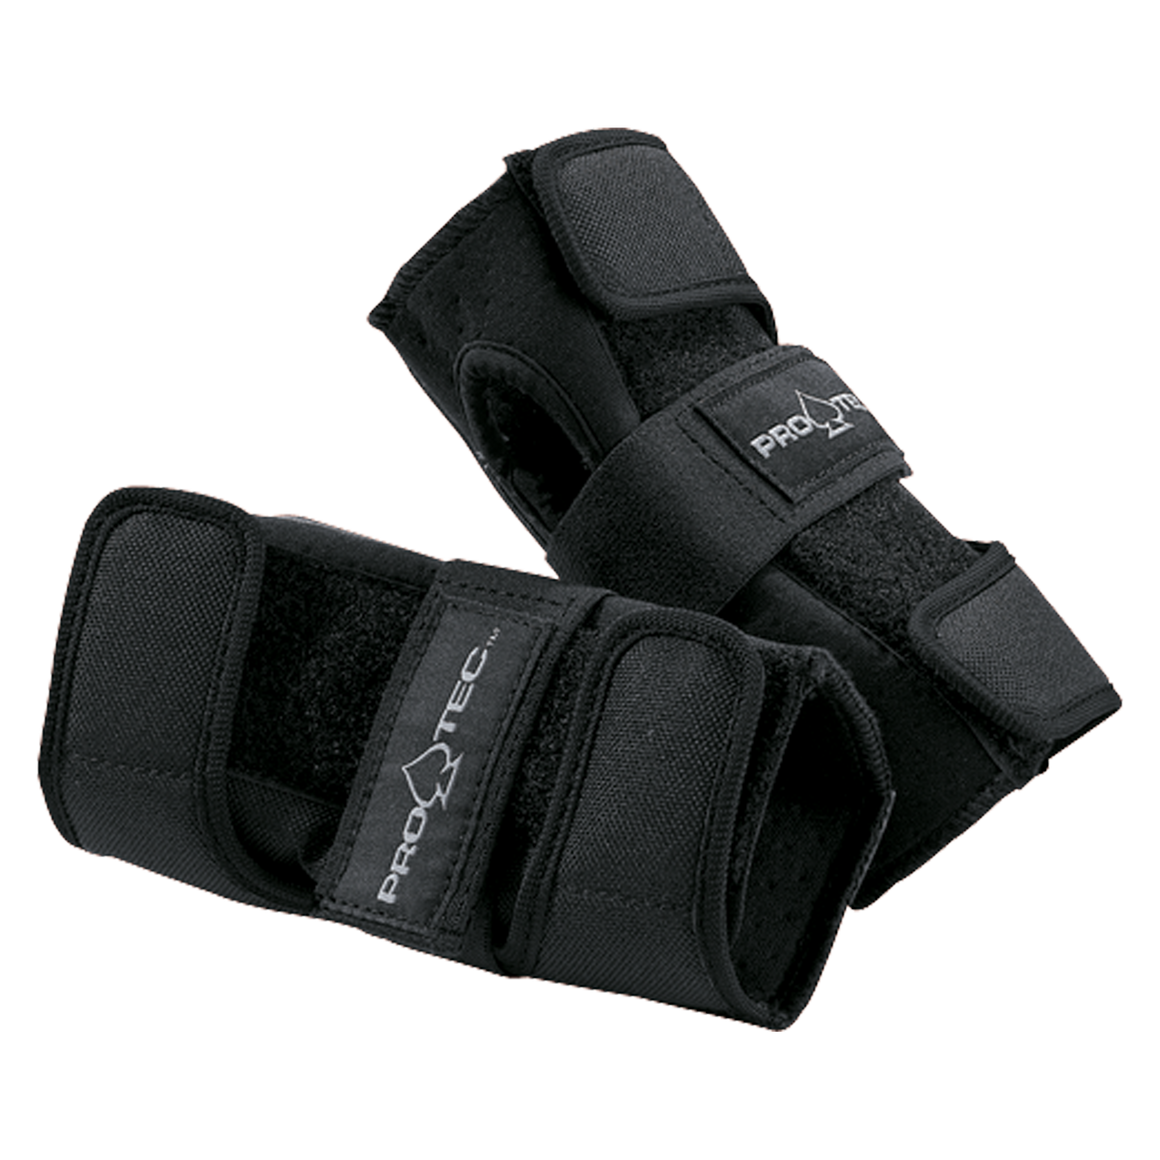 Protective Gear (Skate) - Pro-tec Wrist Guards